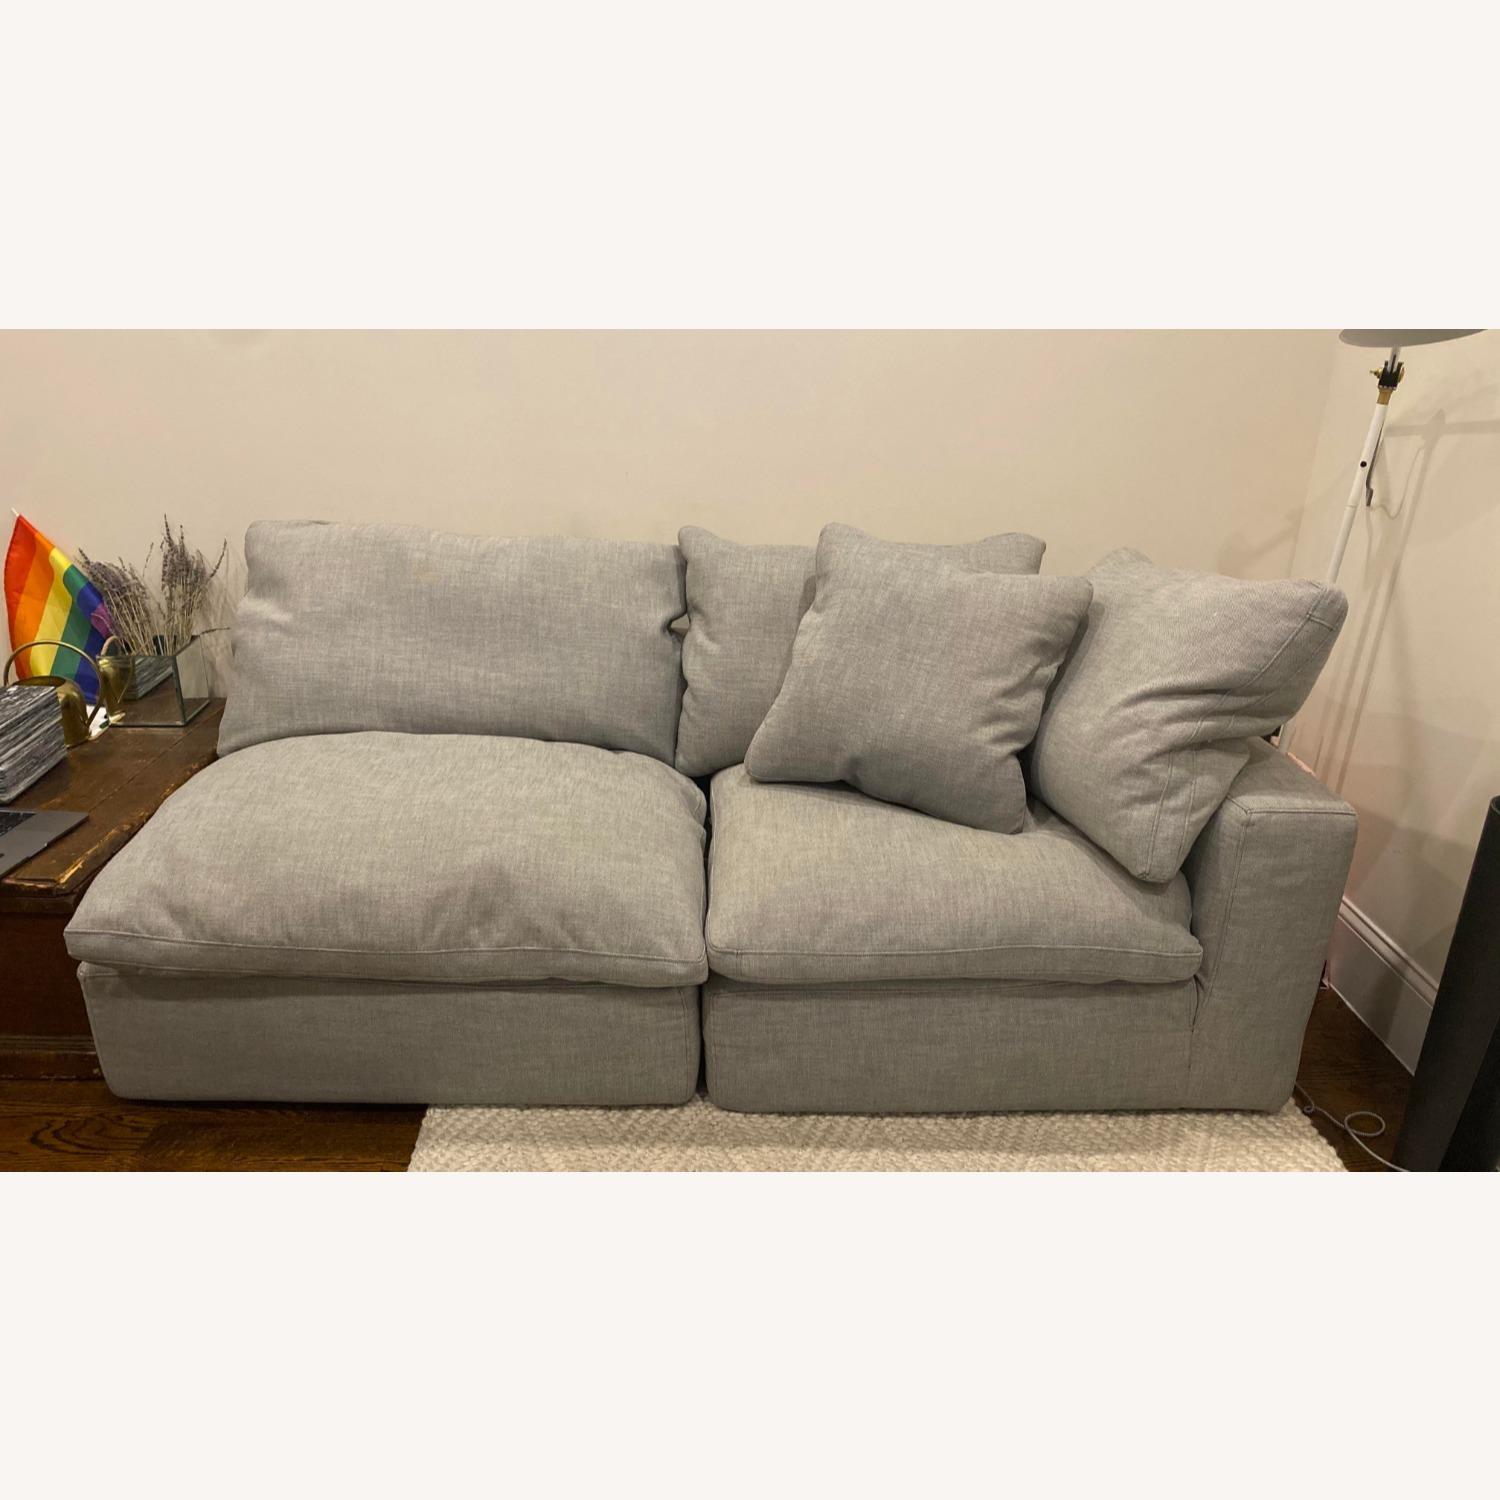 Restoration Hardware Cloud Couch Sectional - image-0